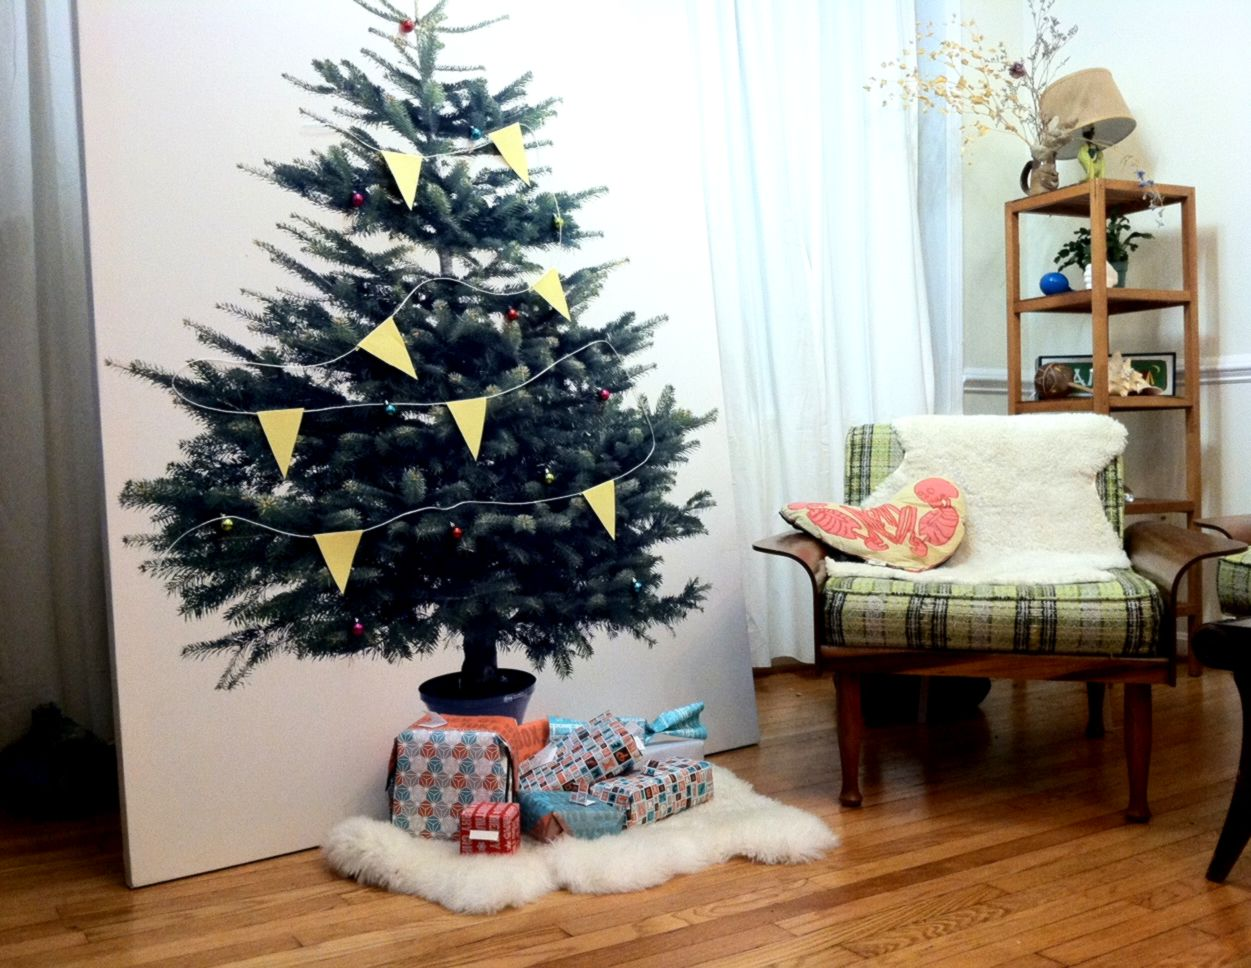 When you don't quiet have enough room for a tree - DIY Stretched IKEA Christmas Tree | クリスマス